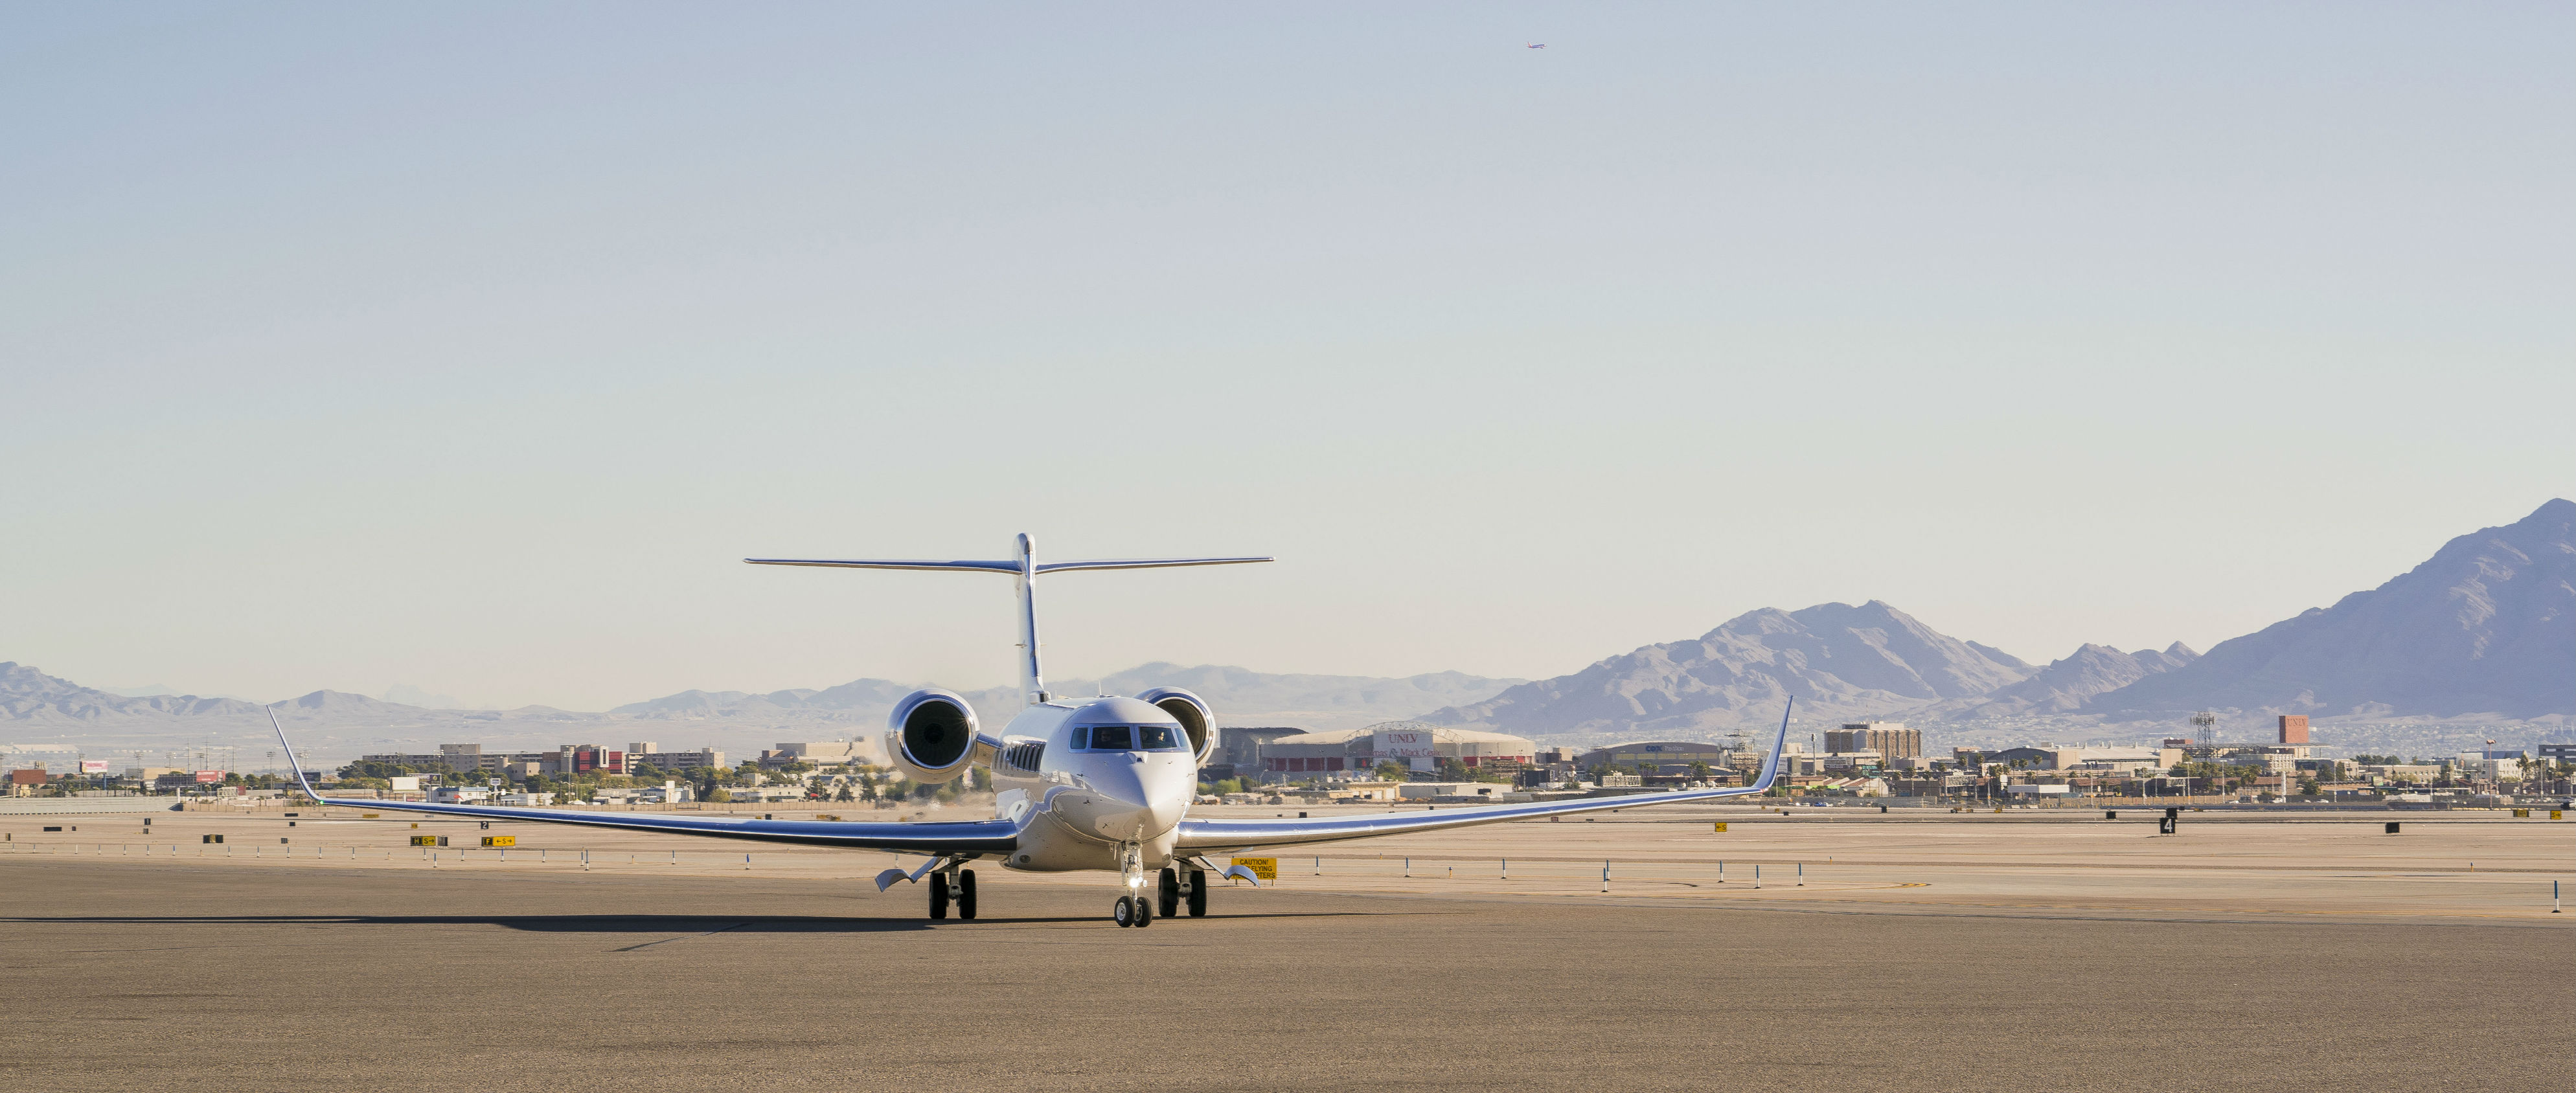 Gulfstream G650ER rests on runway.